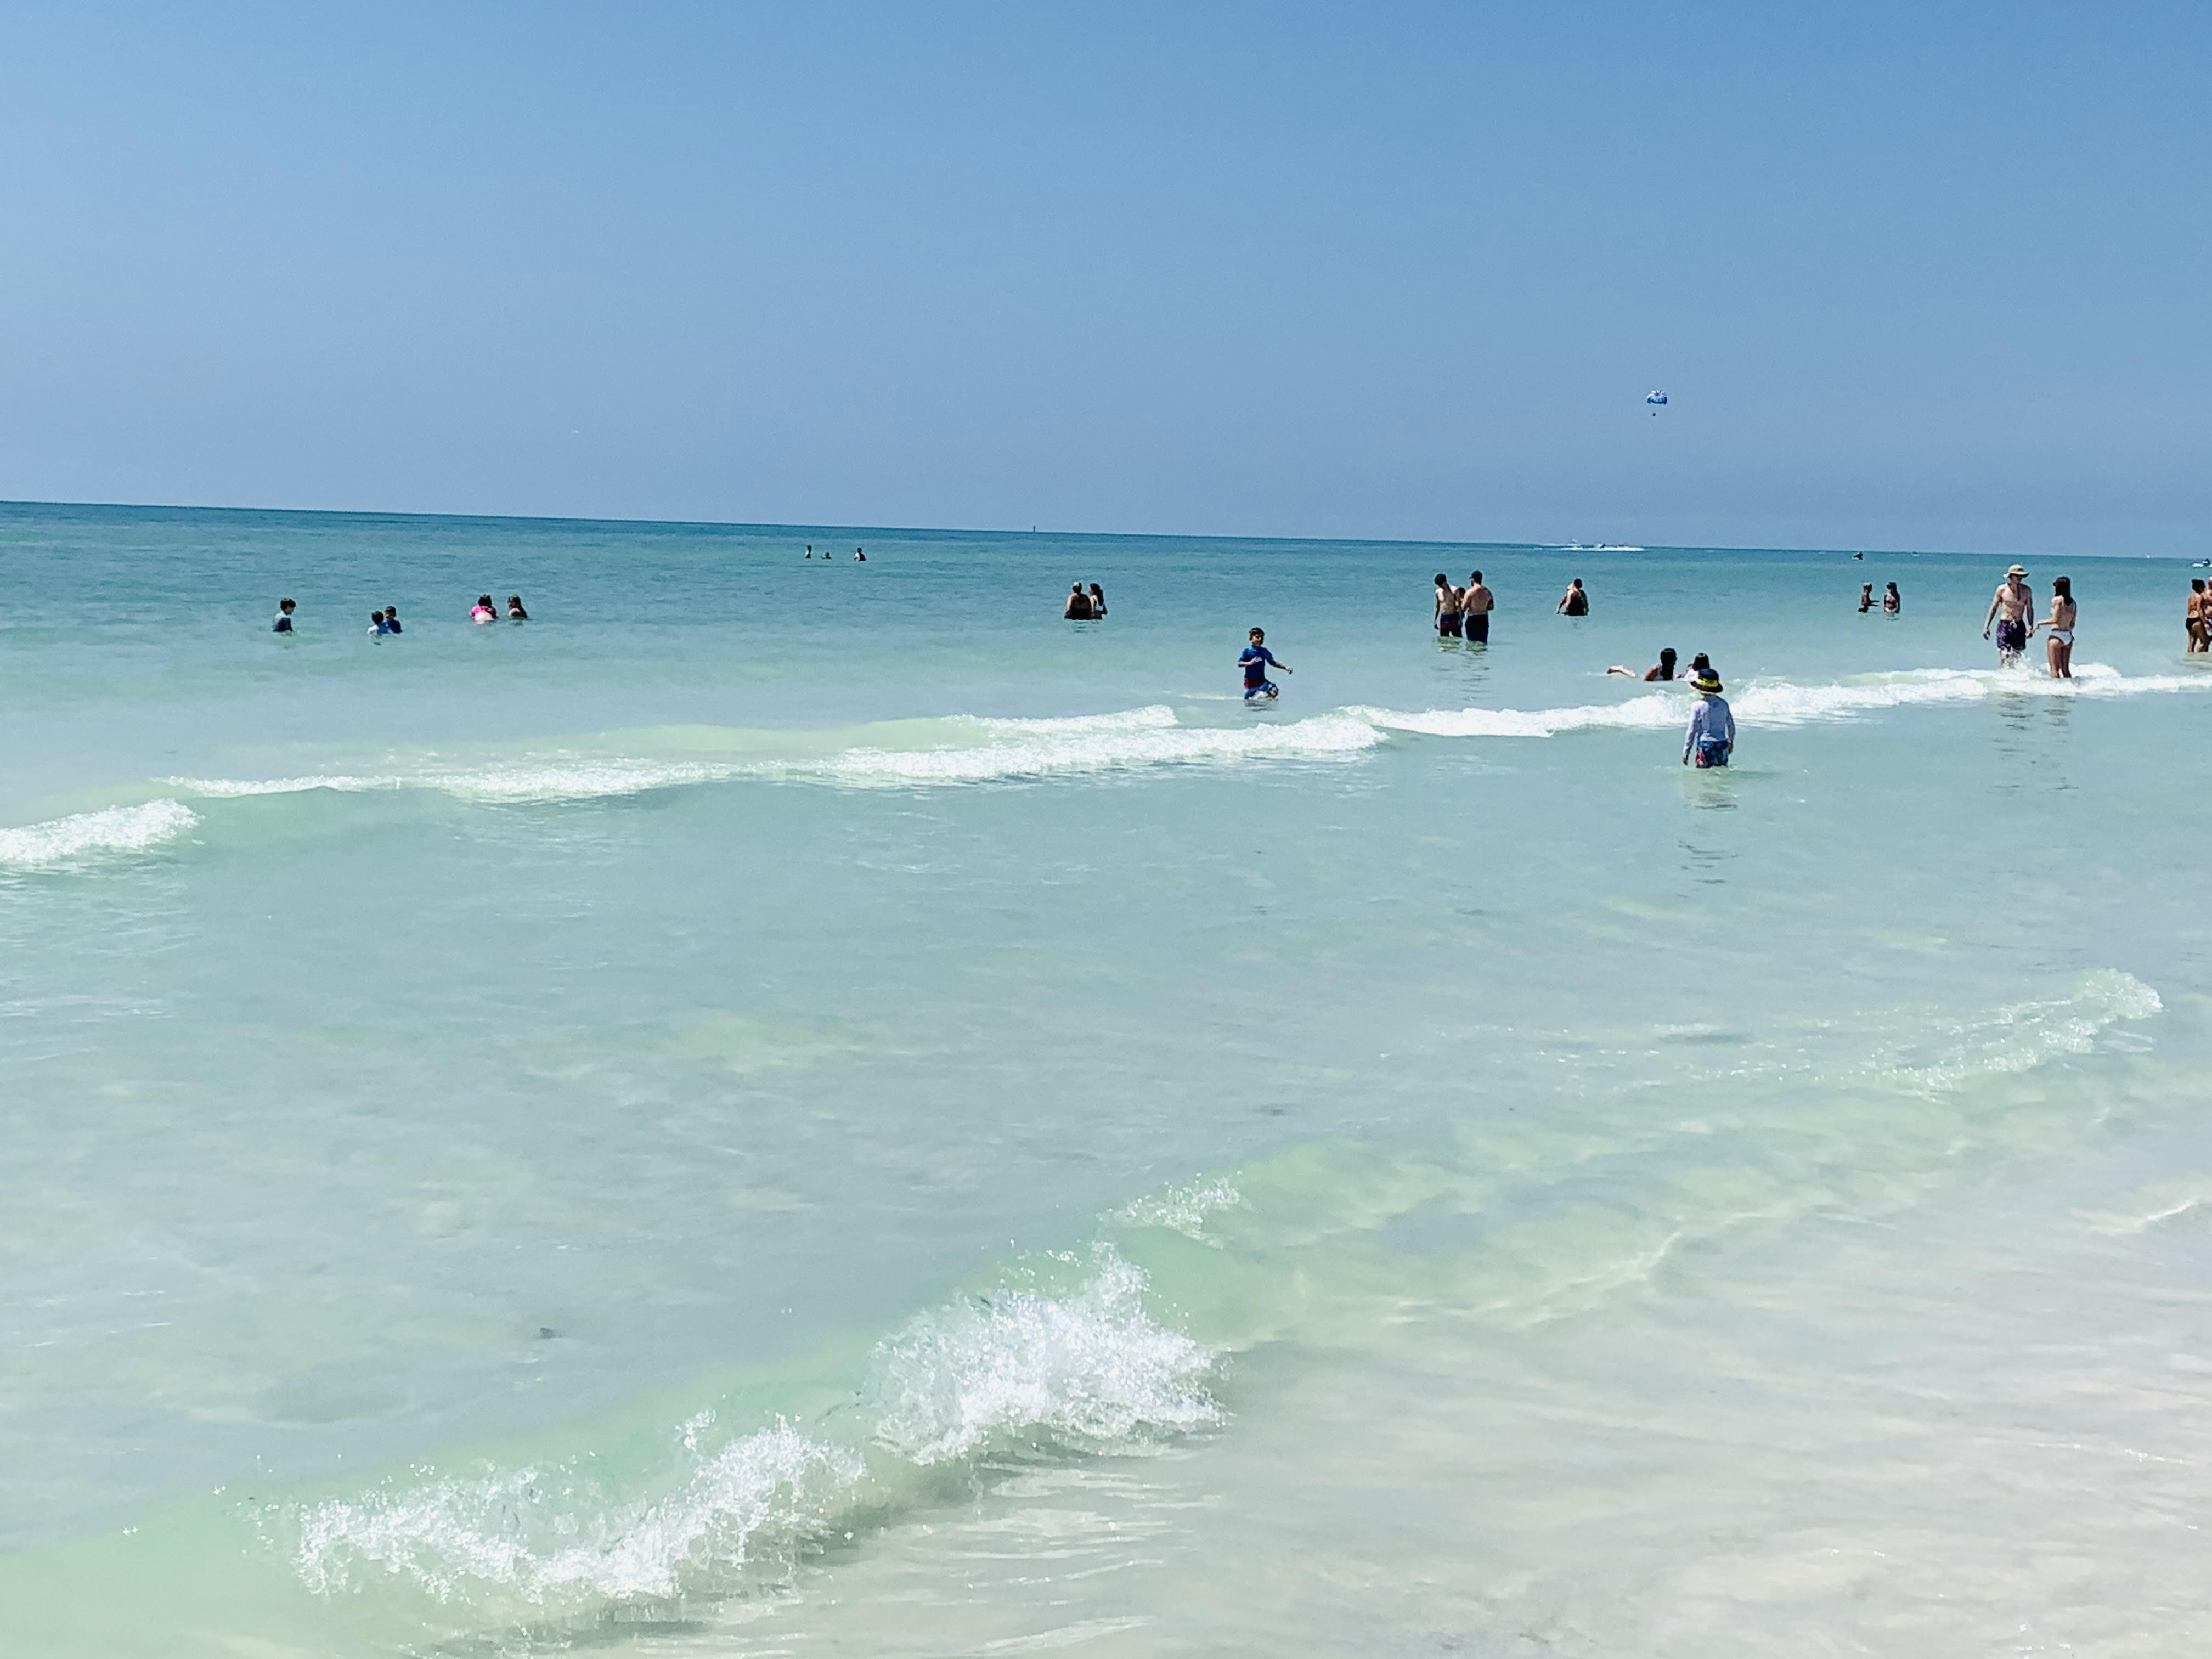 Anna Maria Island beach; Discover the best things to do on Anna Maria Island from Top US Family Travel Blog, Travel With A Plan!